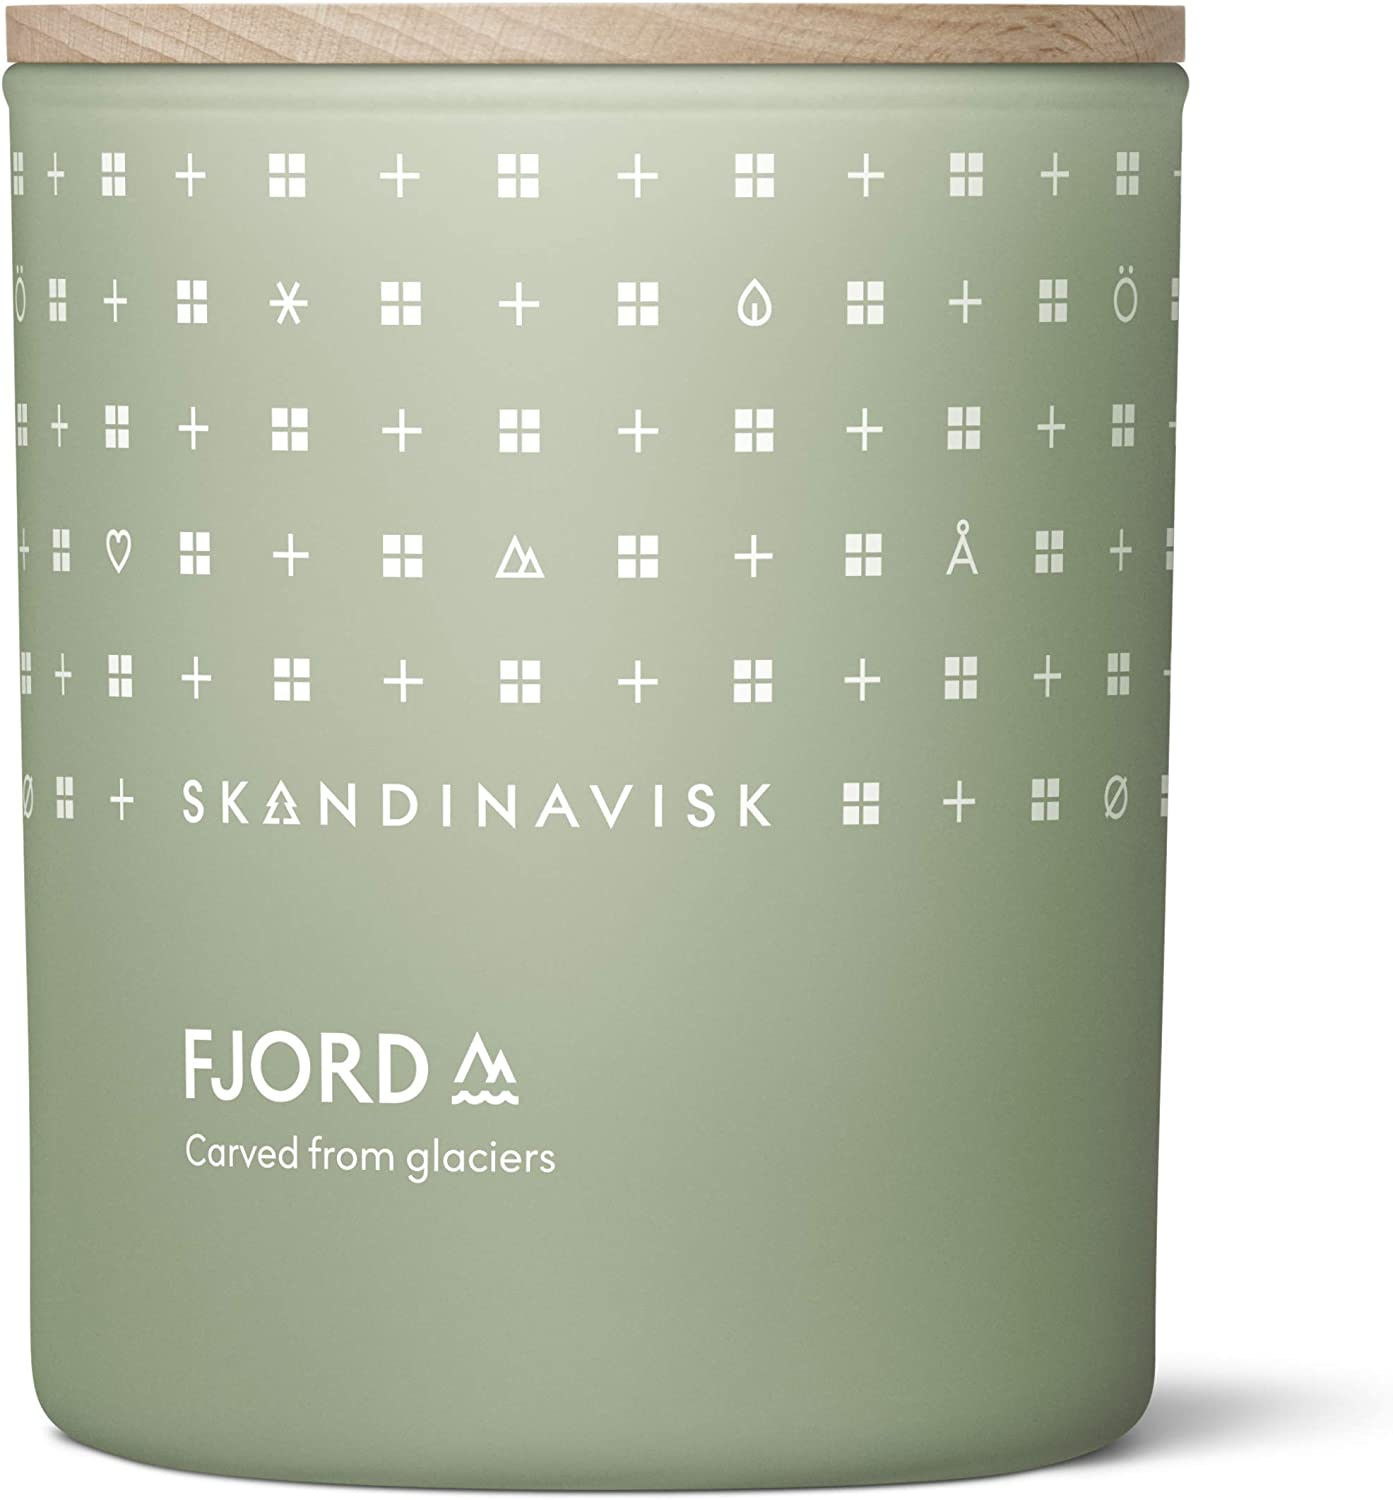 Skandinavisk Fjord Scented Candle. Fragrance Notes: Apple and Pear Blossom, Orchard Fruits and Redcurrants. 7.0 oz.